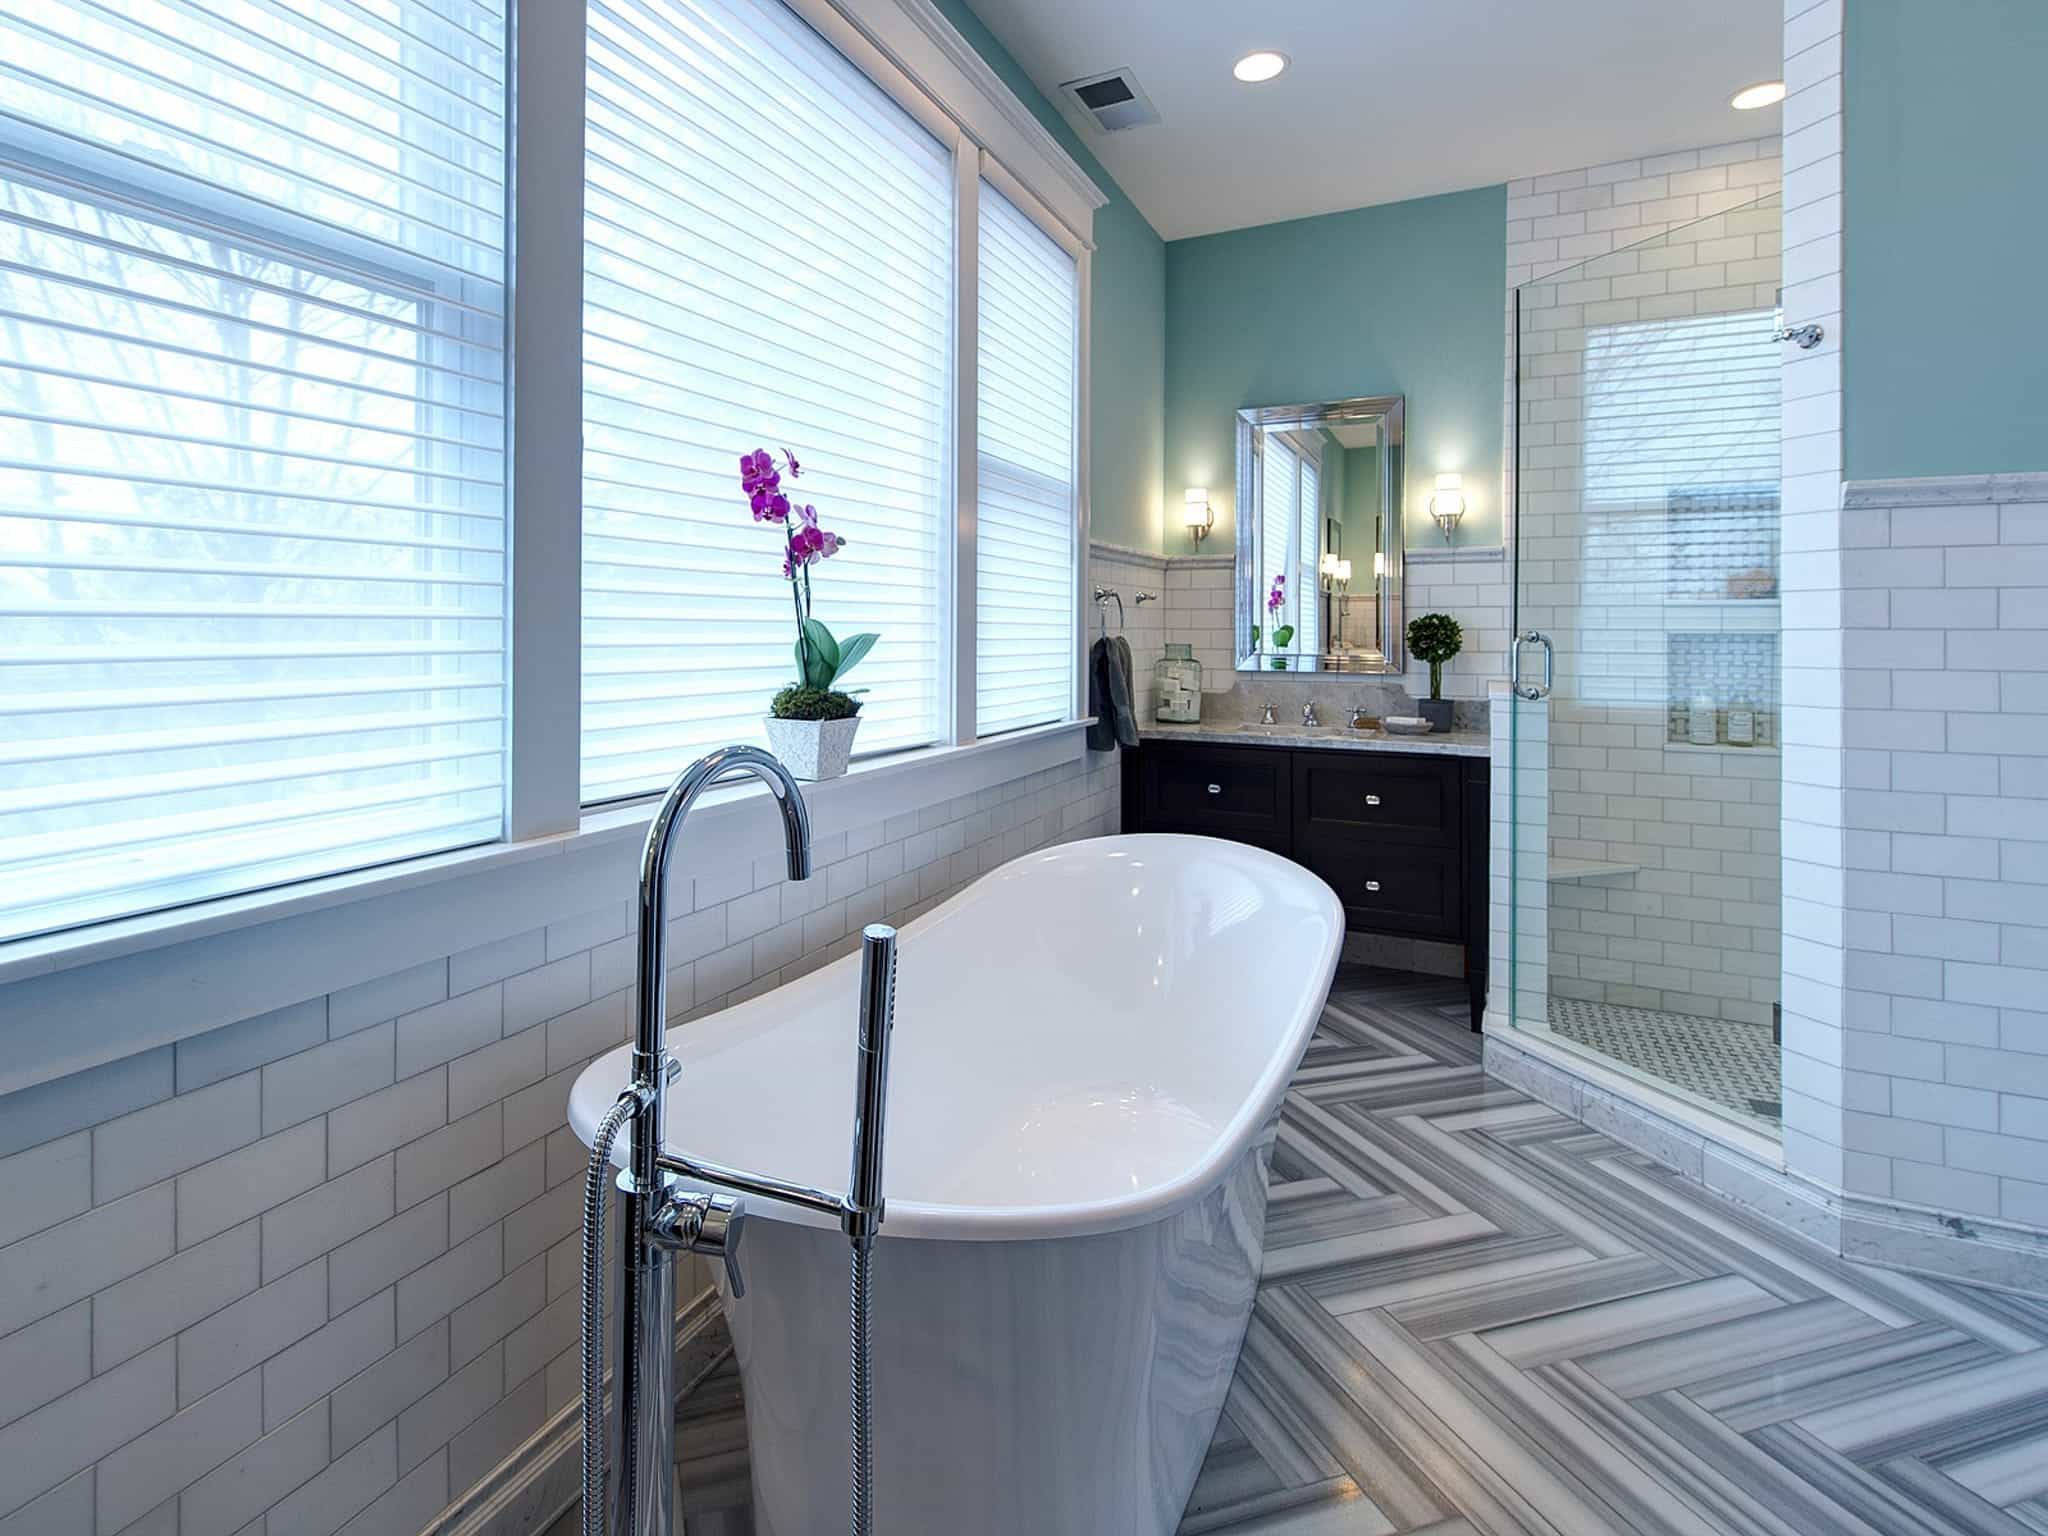 Eclectic, Luxurious Bathroom With White Subway Tile (Image 7 of 20)